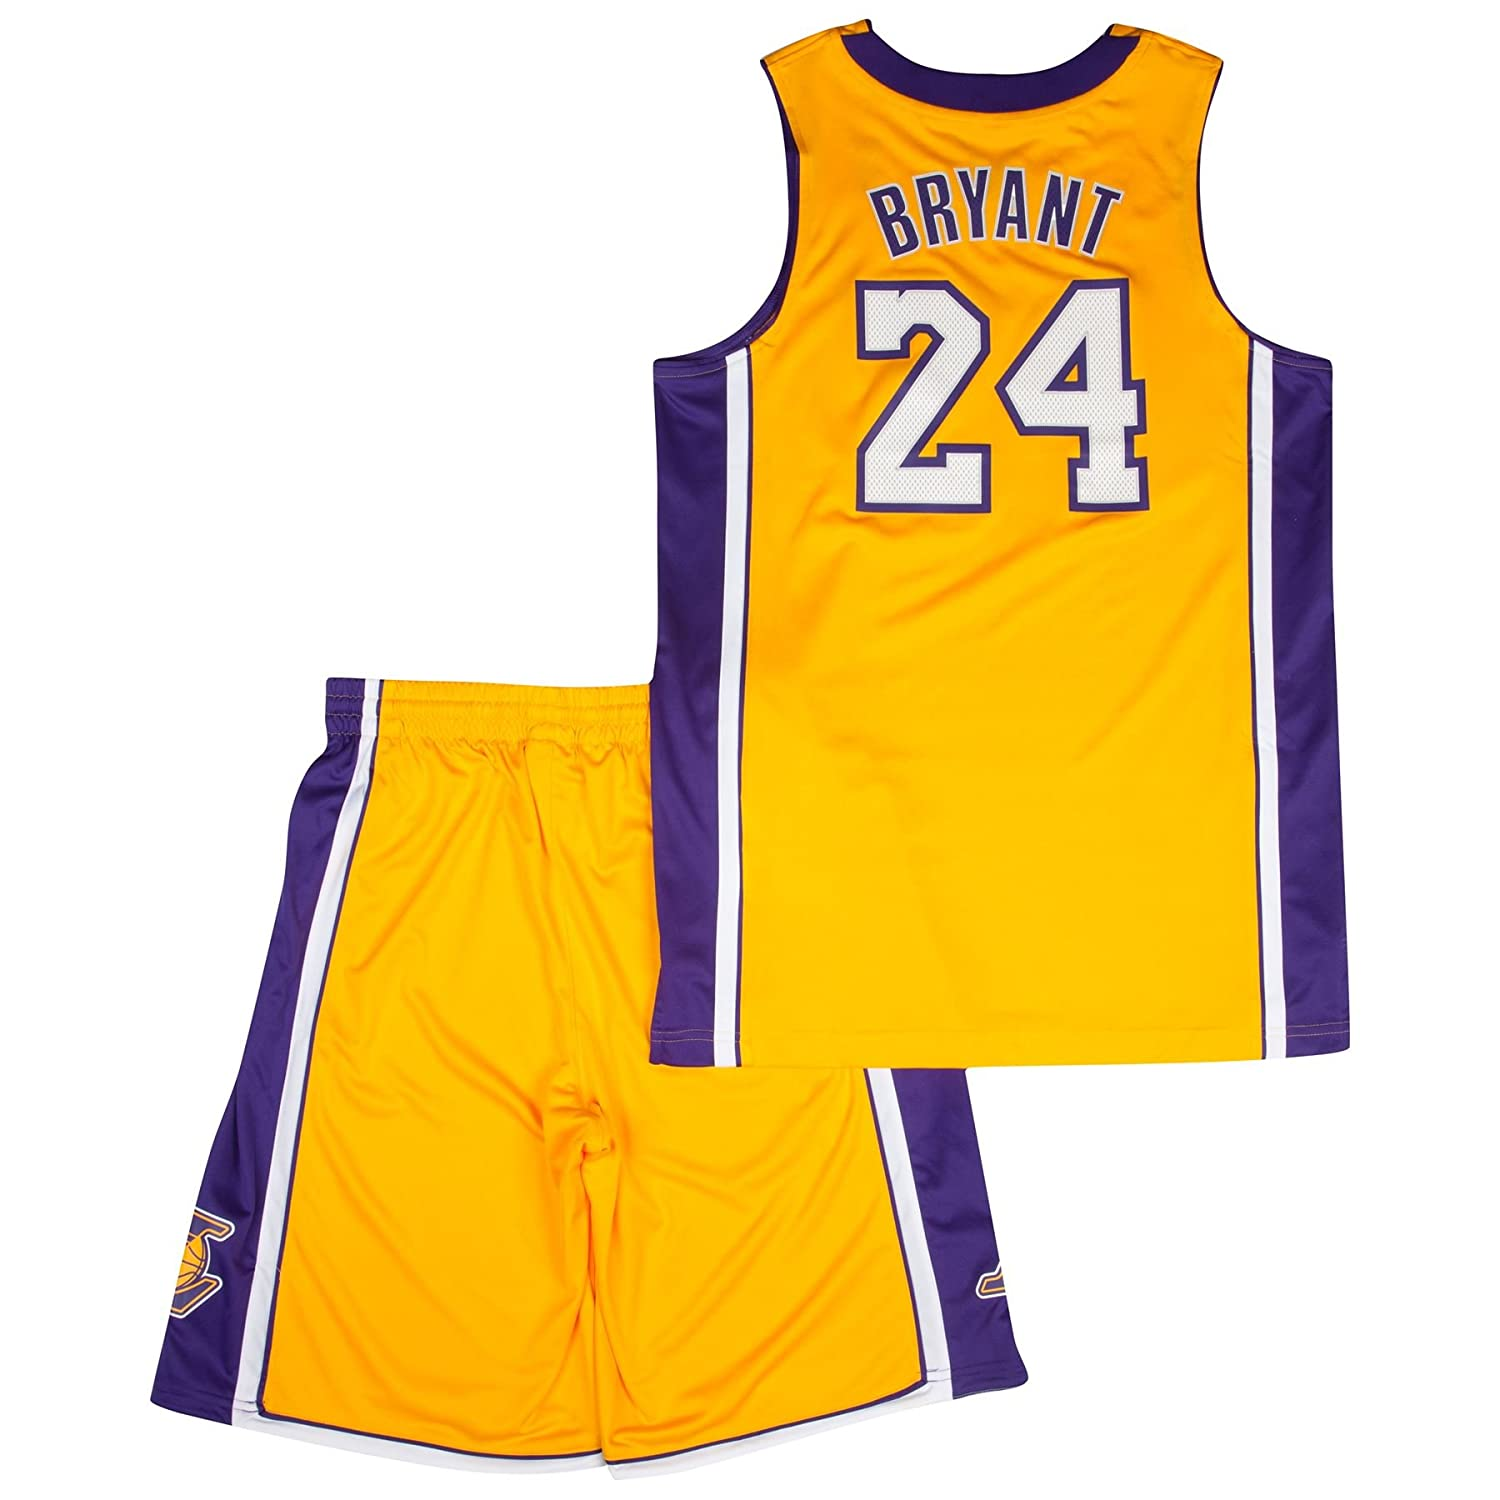 Adidas Ropa La Lakers Minikit Nba-Kbr 16a Junior: Amazon.es: Deportes y aire libre